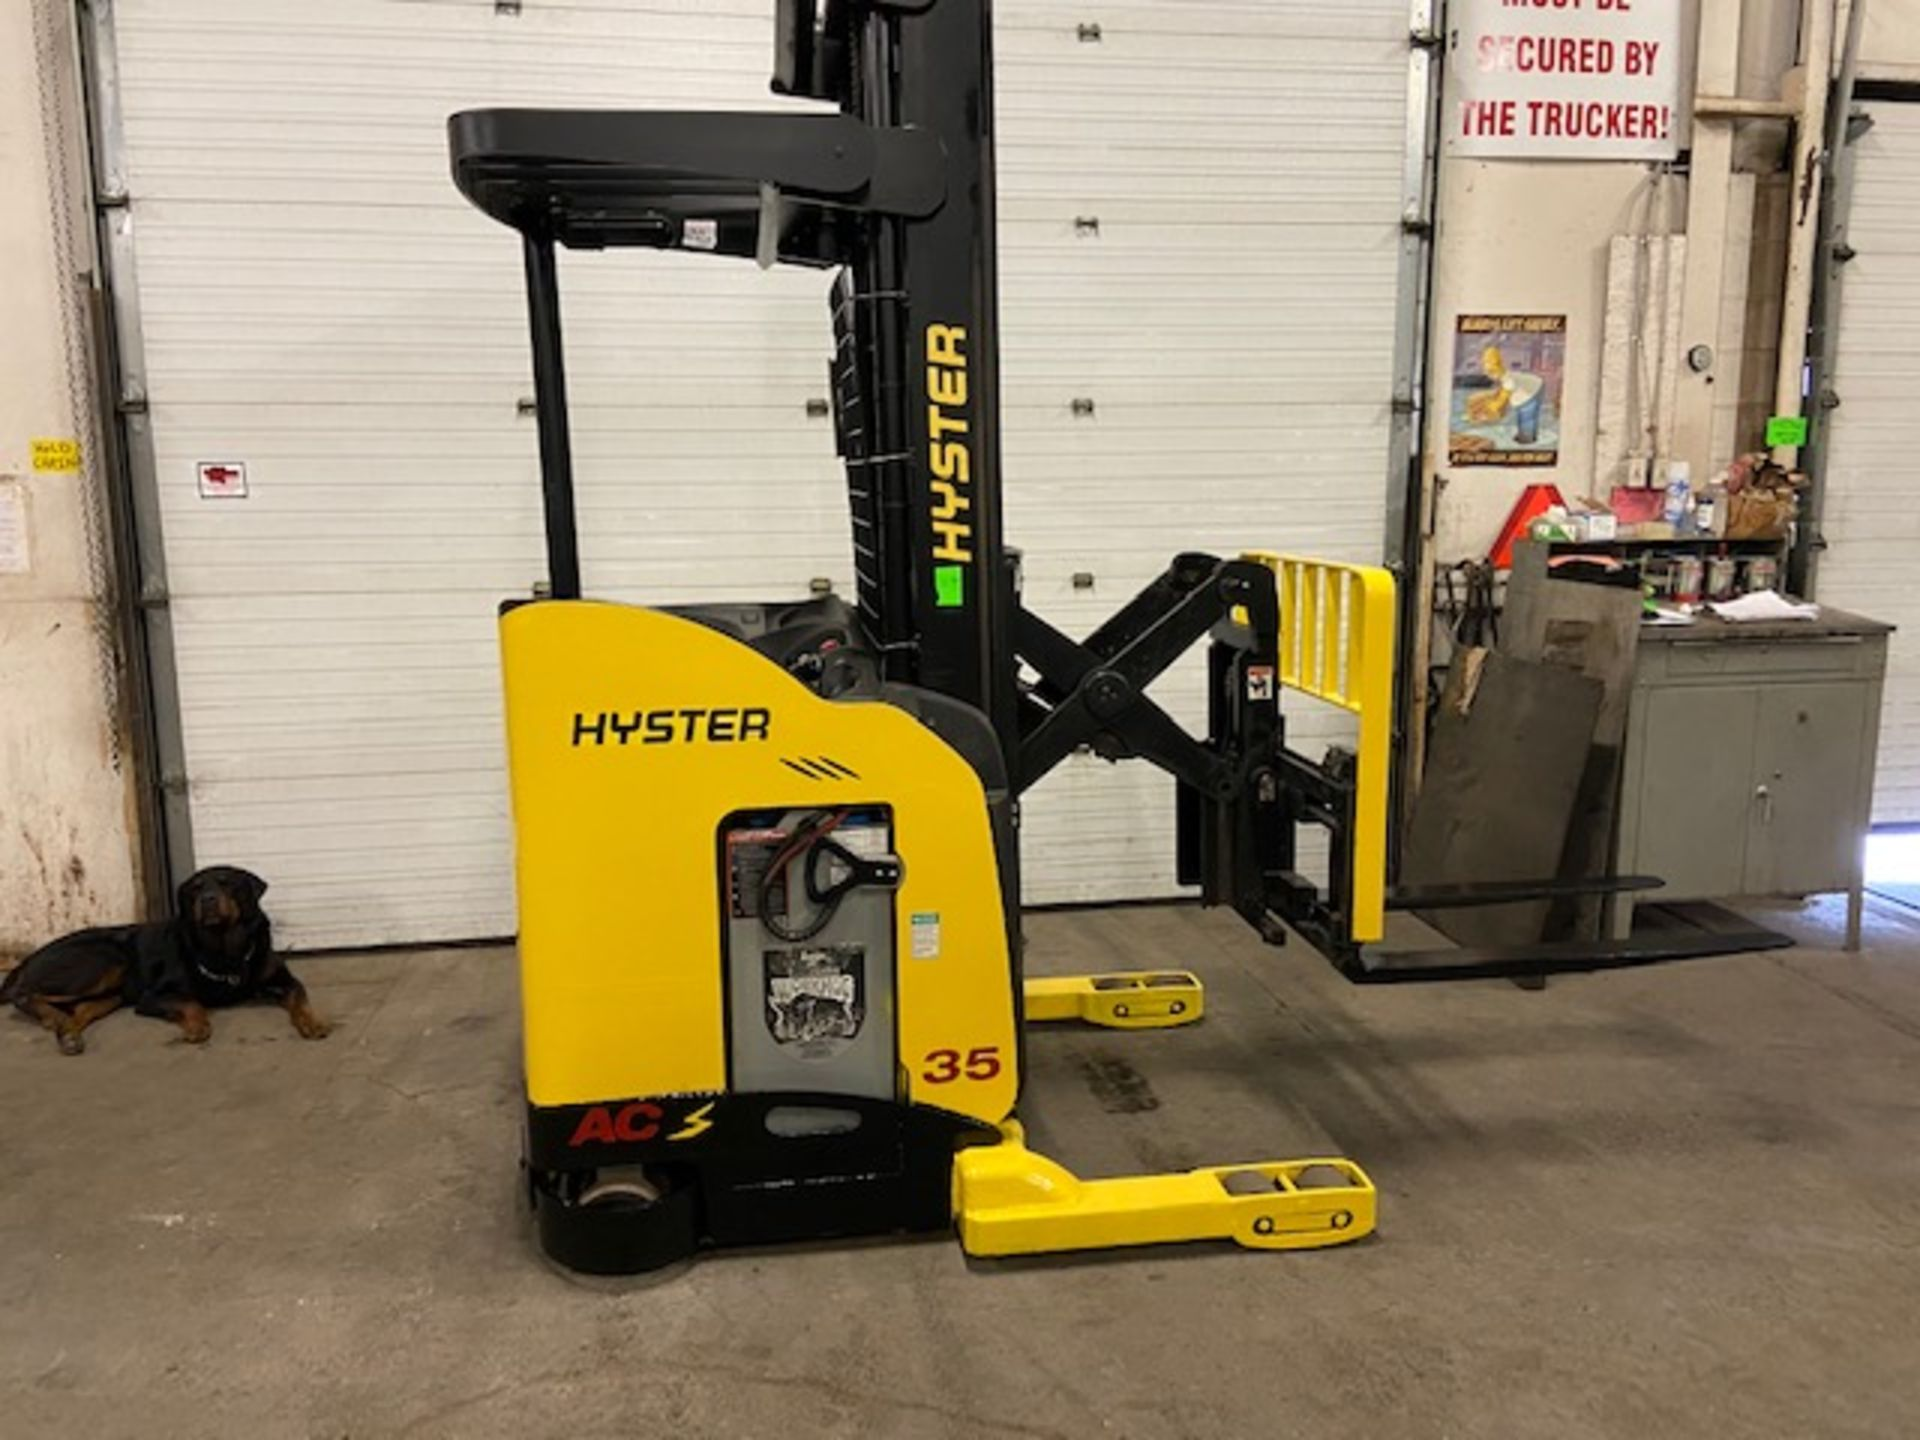 FREE CUSTOMS - 2012 Hyster Reach Truck Pallet Lifter REACH TRUCK electric 3500lbs with sideshift 3-